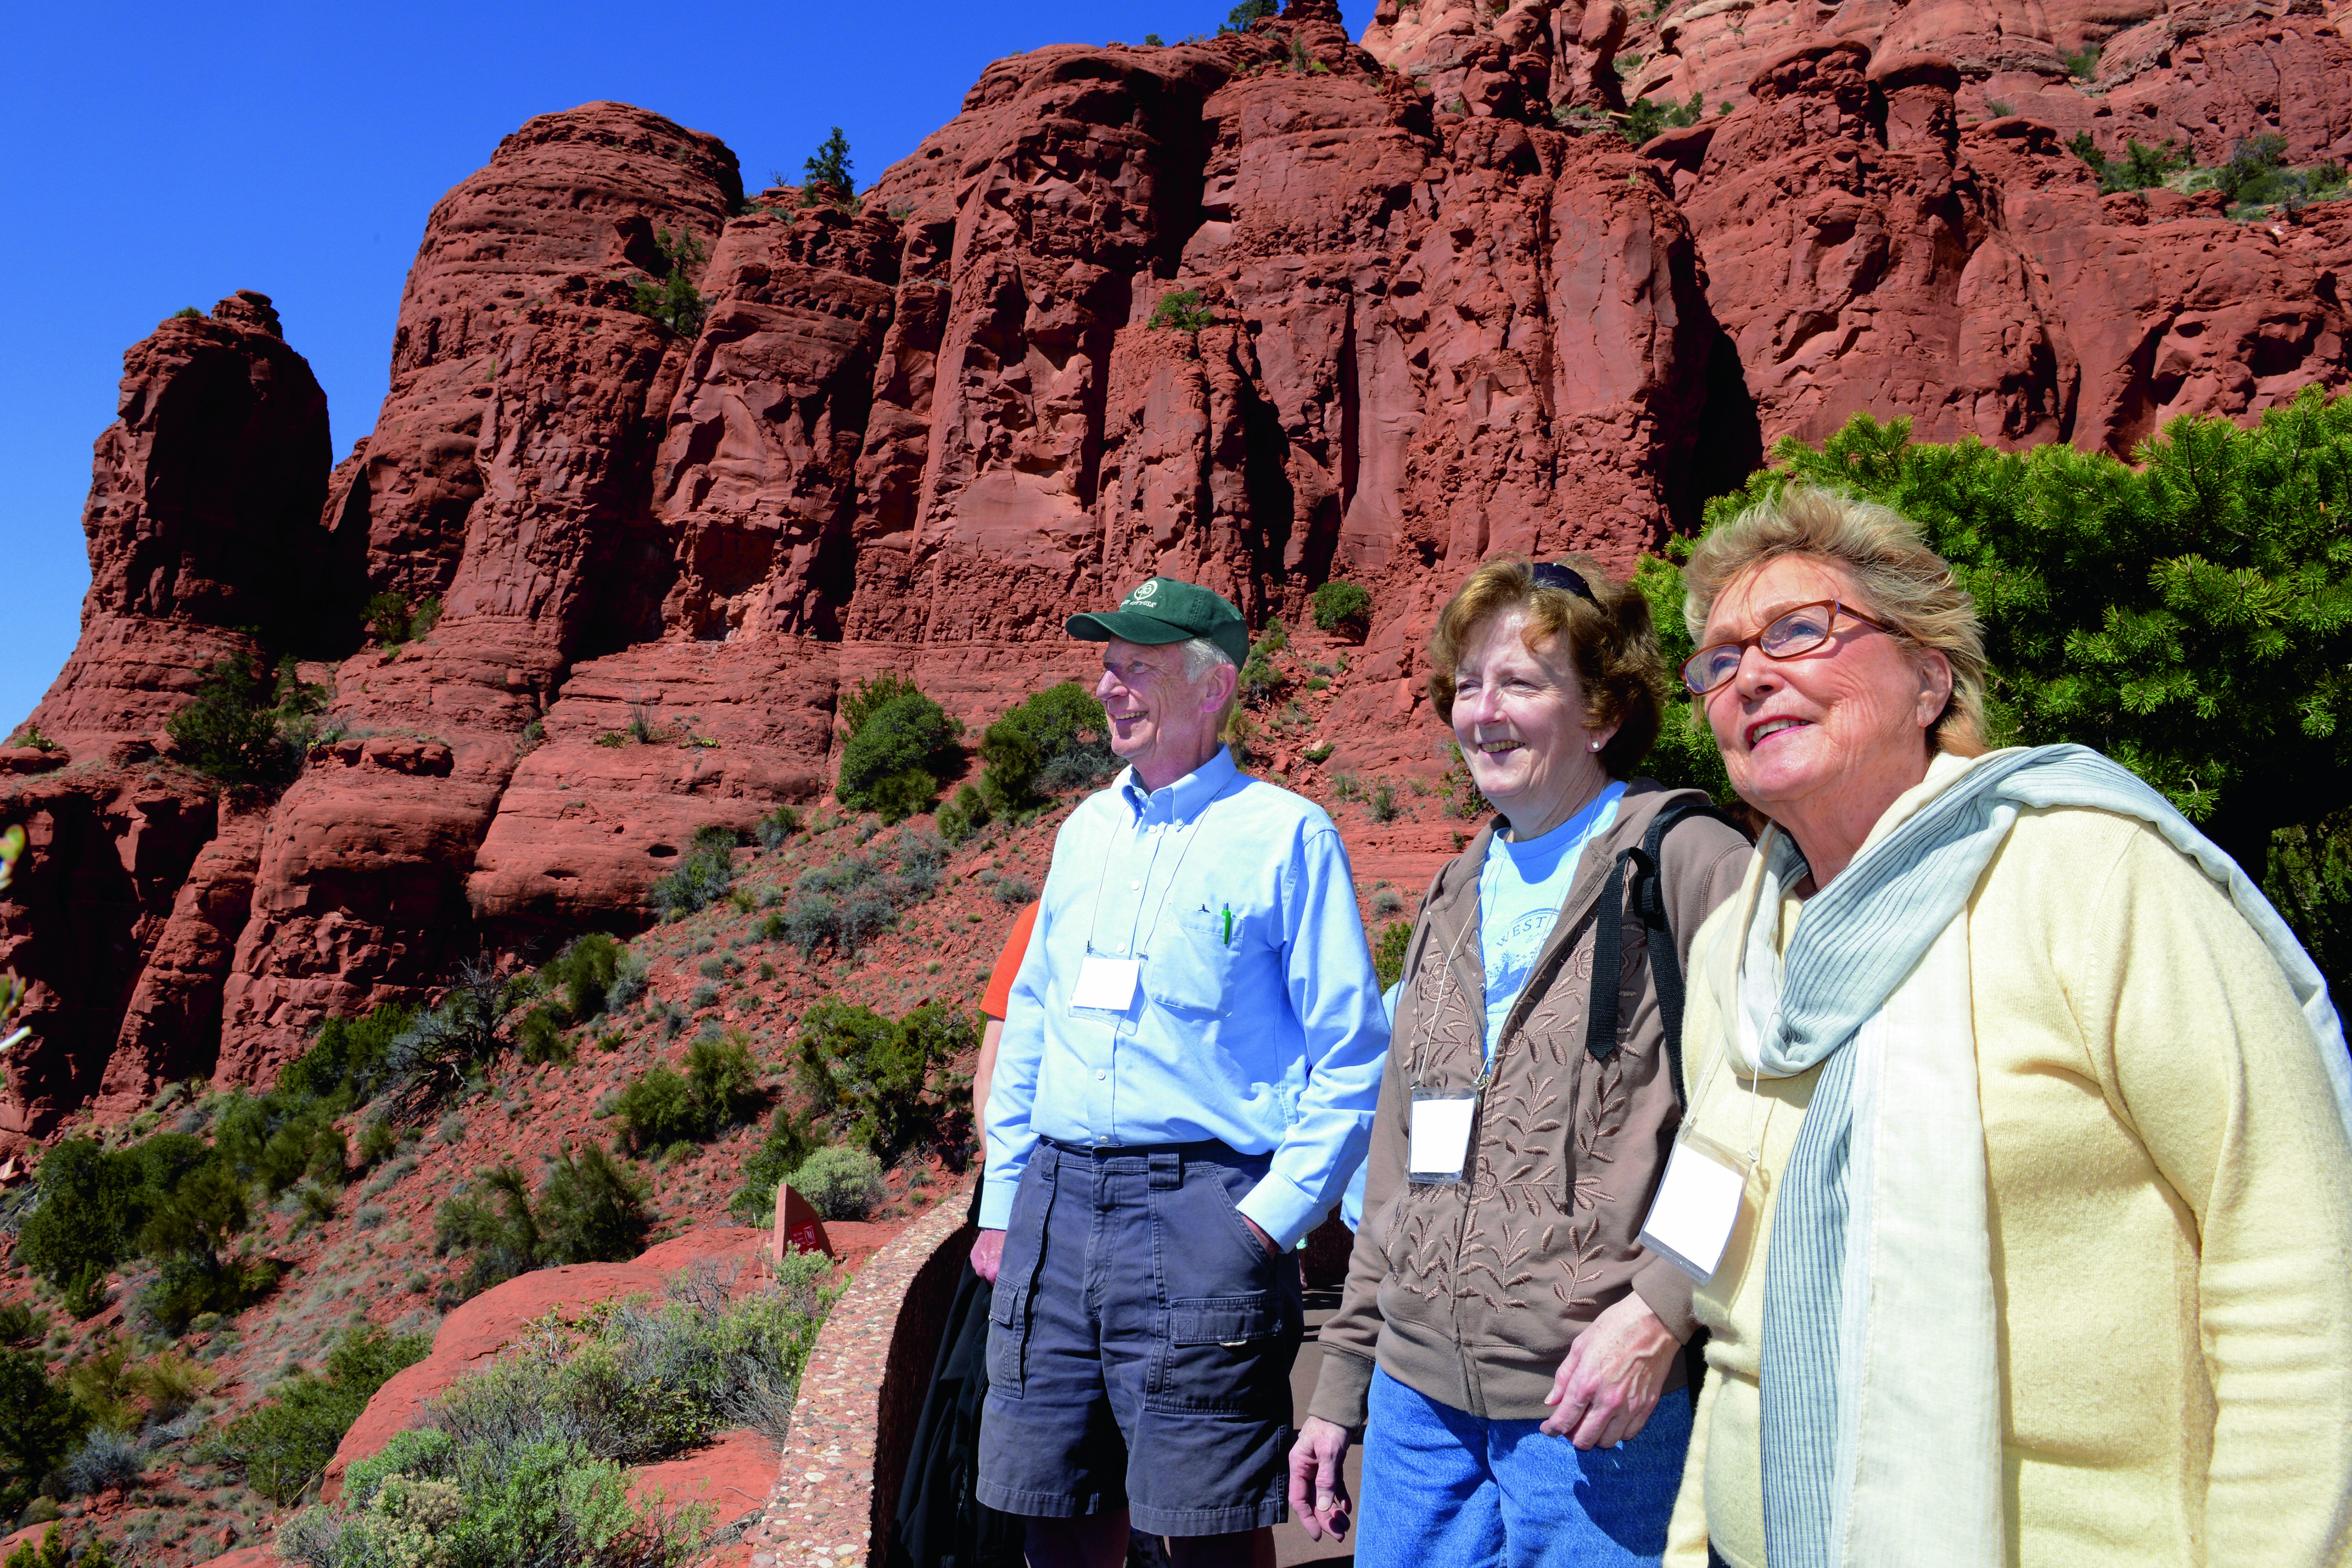 Road Scholar, the nation's largest non-profit educational travel organization for adults over 50, is back on the road after more than a year of hibernation caused by the coronavirus.